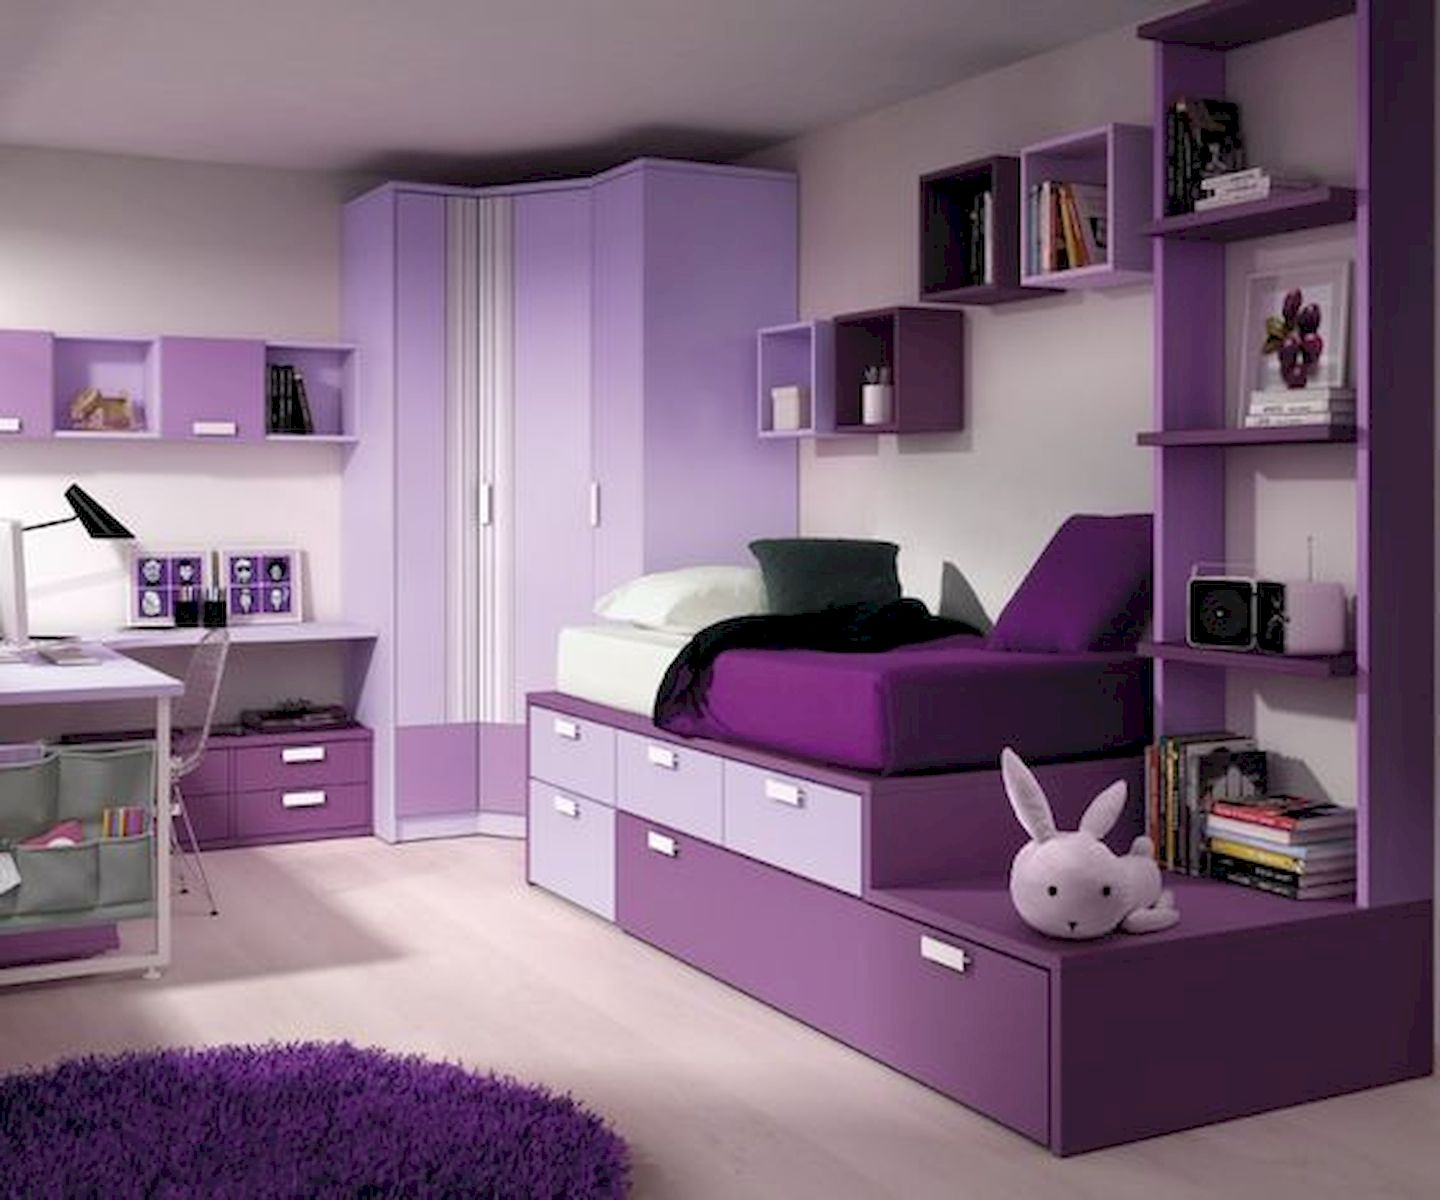 60 Cute DIY Bedroom Design and Decor Ideas for Kids (44)